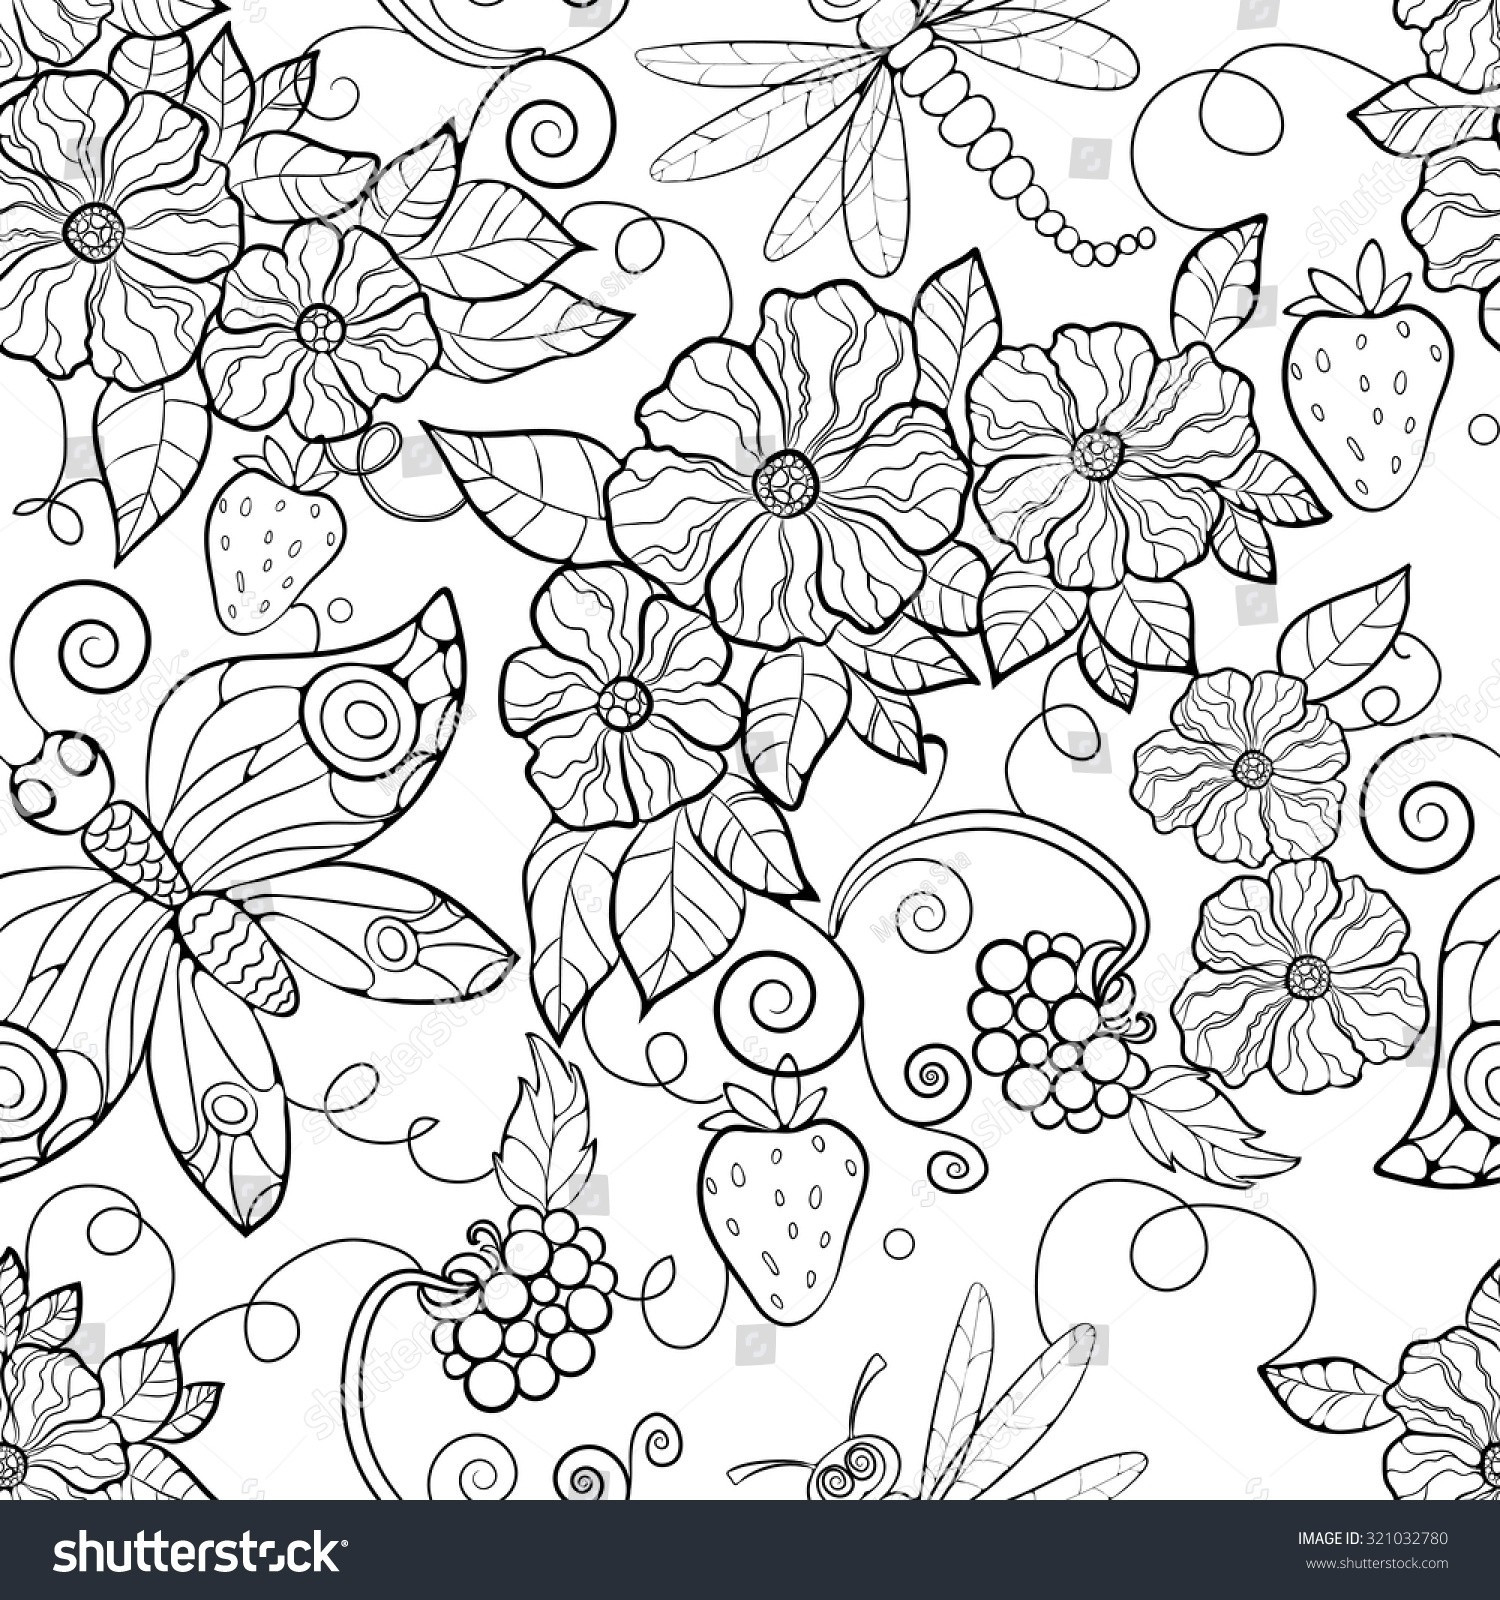 Free Printable Flower Coloring Pages Free Printable Flower Coloring Pages Refrence Butterfly And Flower